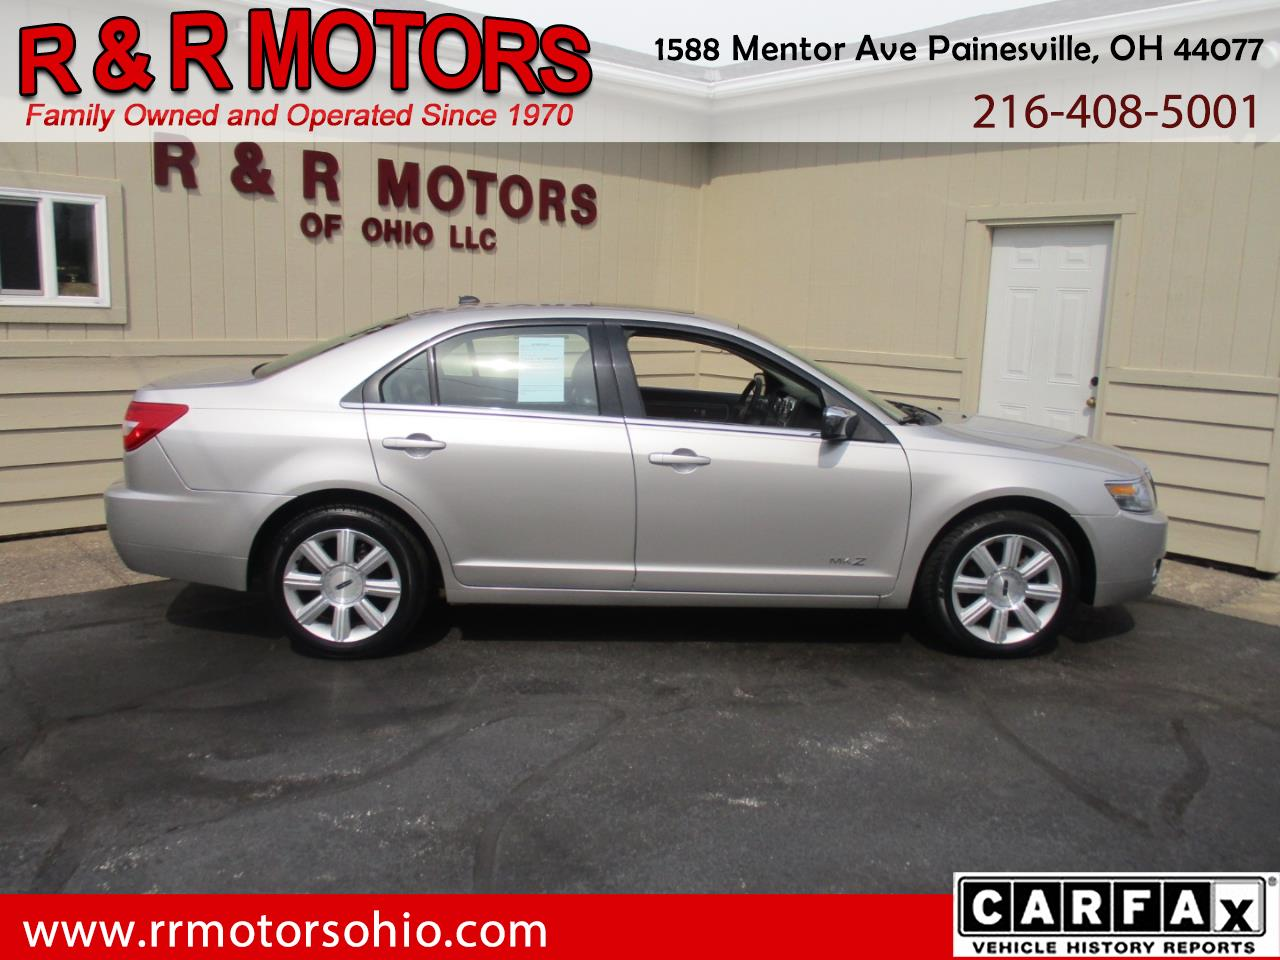 2007 Lincoln MKZ AWD